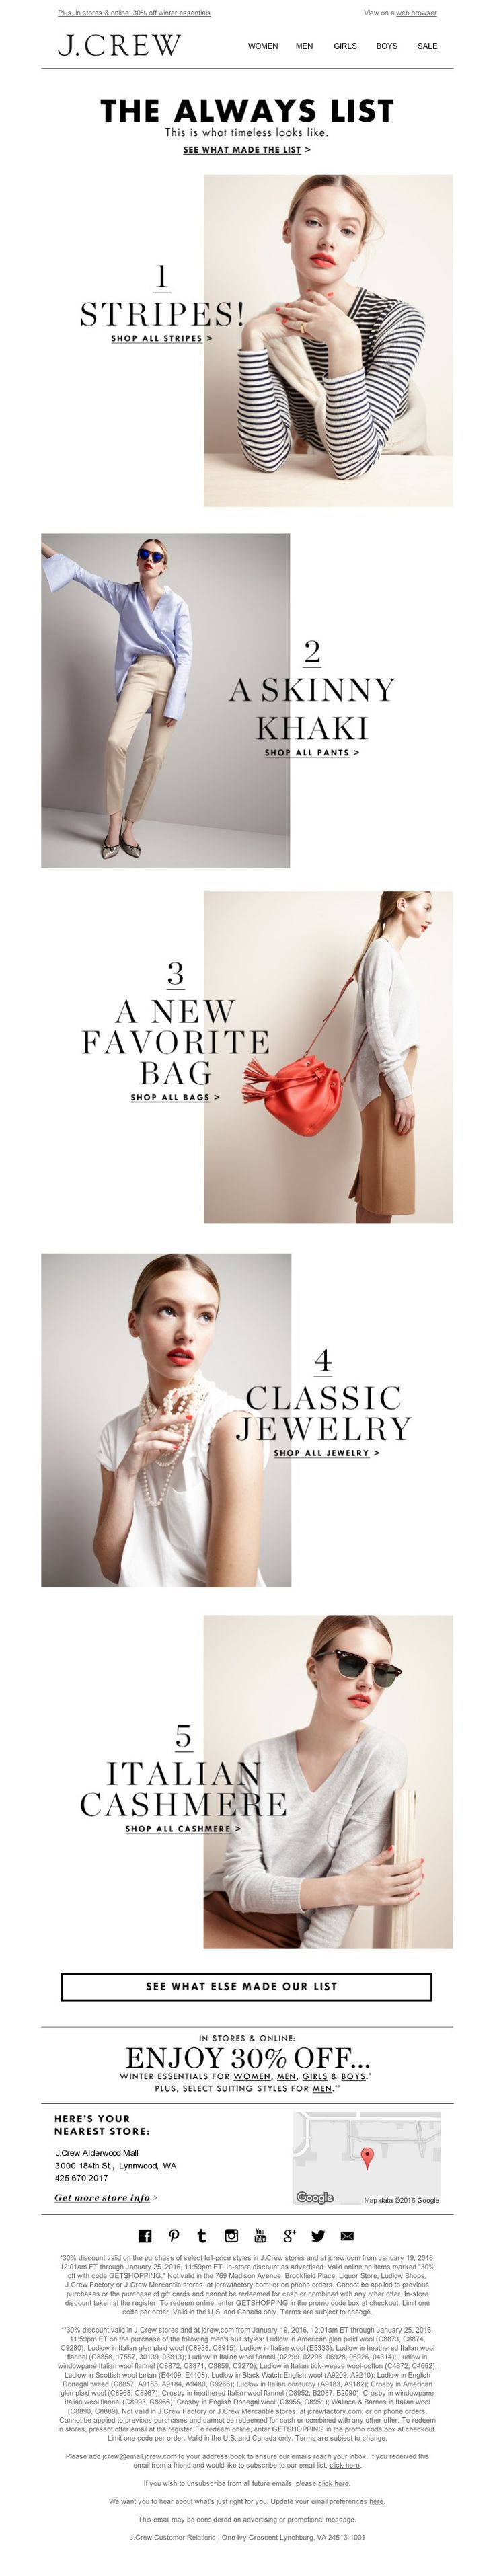 J.Crew - The Always List: more of the items that will never, ever go out of style